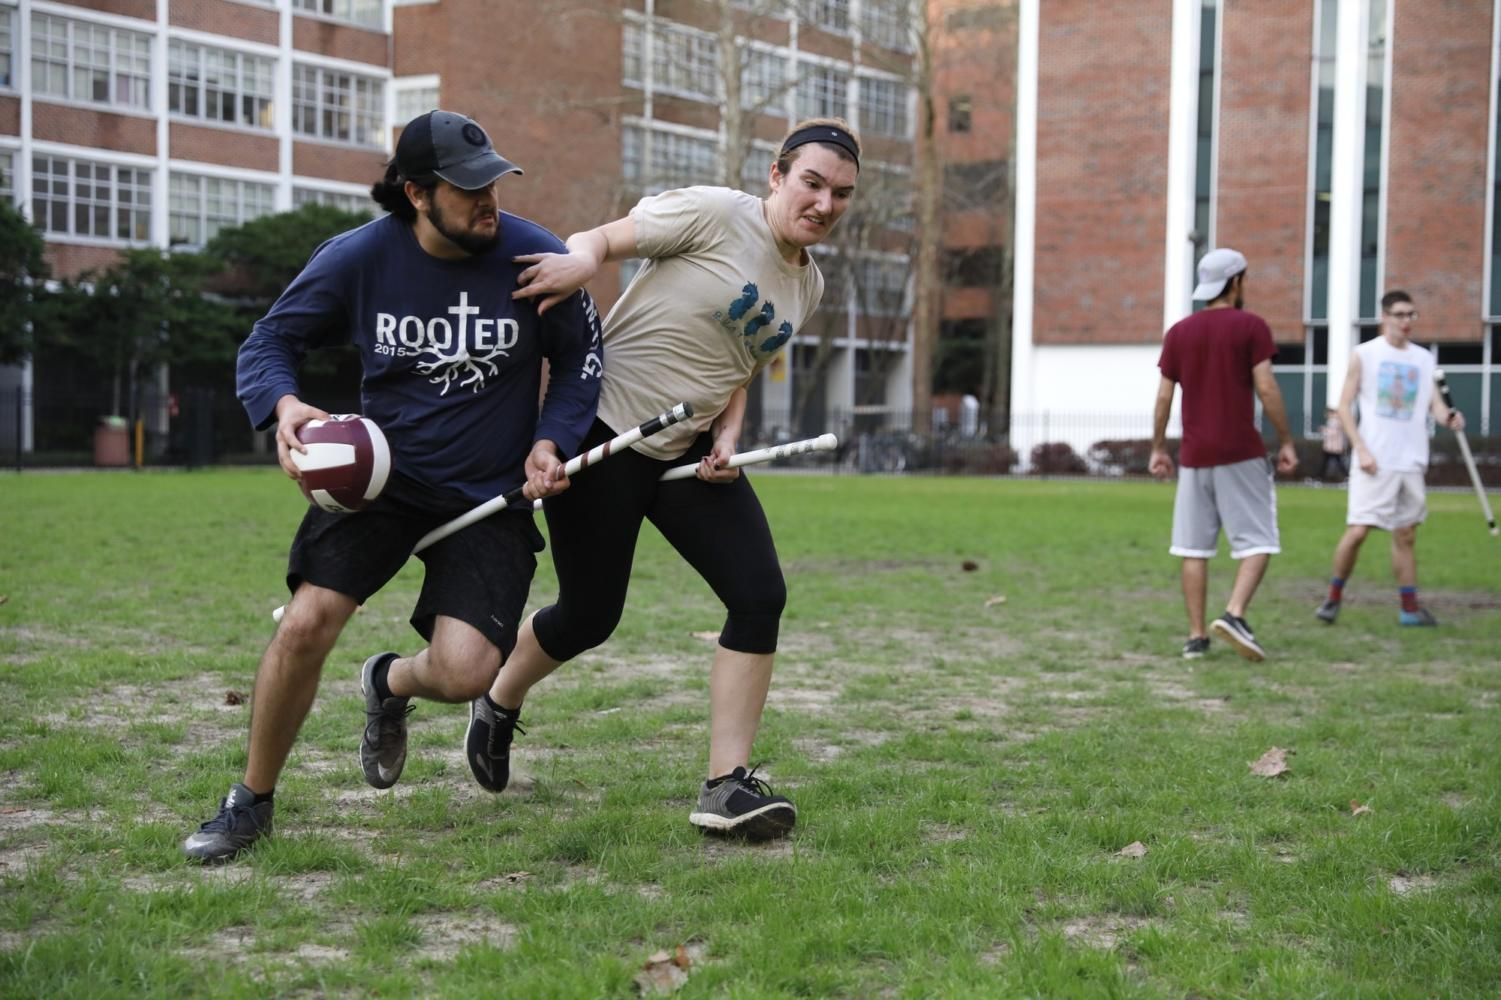 Quidditch team focusing on rebuild this season